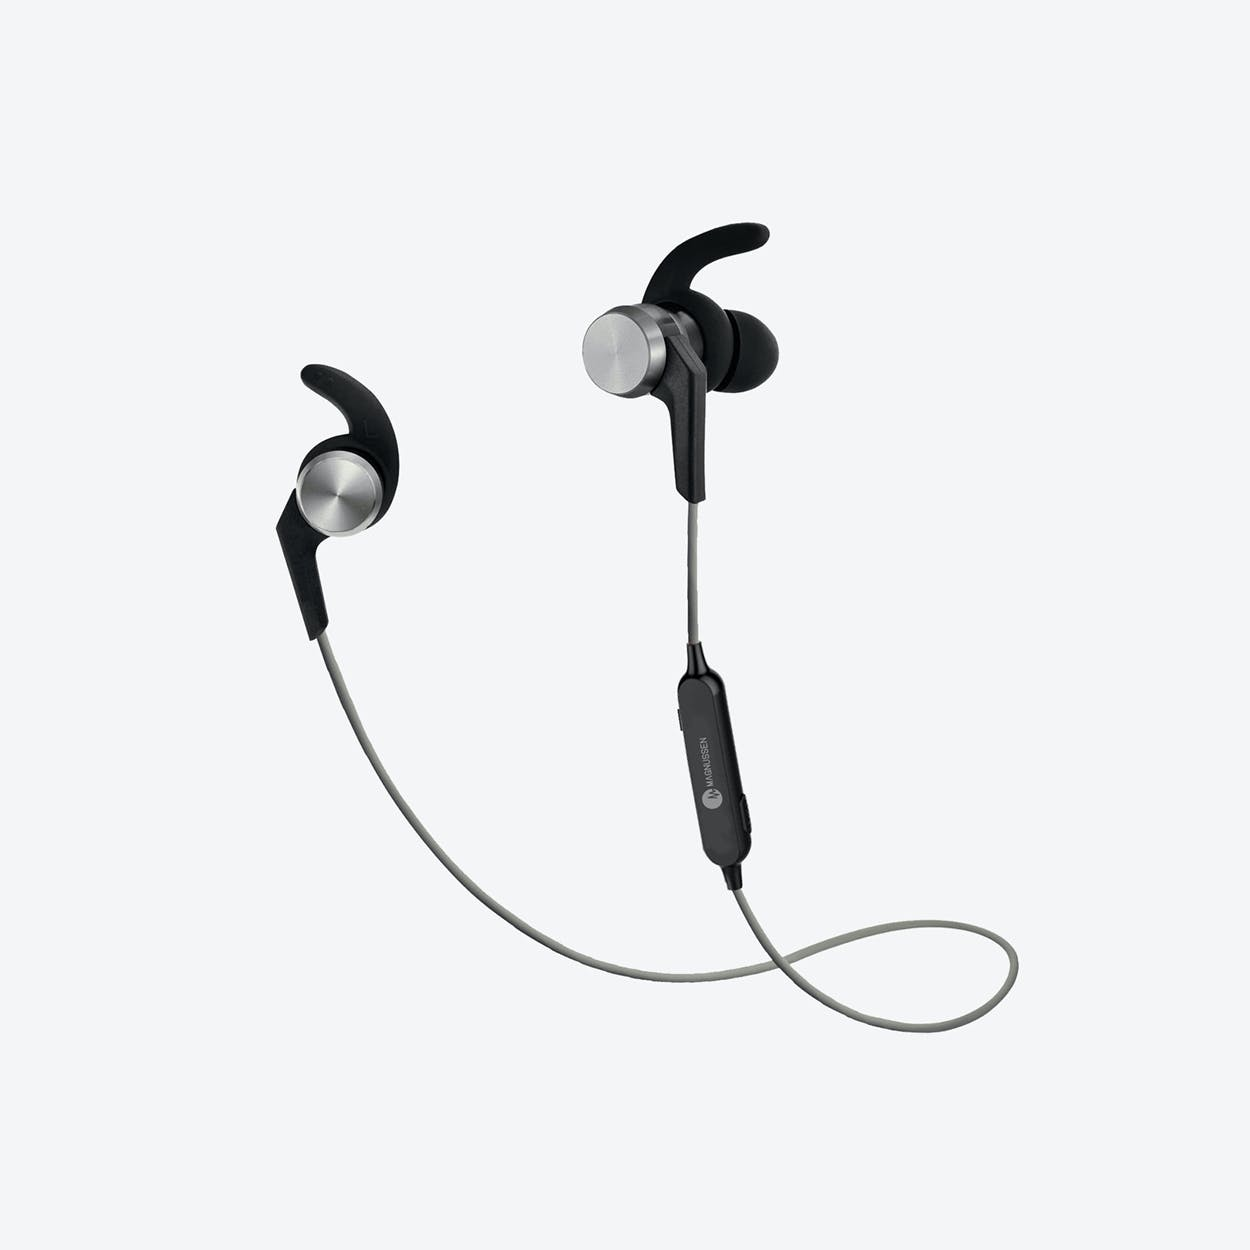 MAGNUSSEN M3 Bluetooth Wireless Earphones in Black & Silver